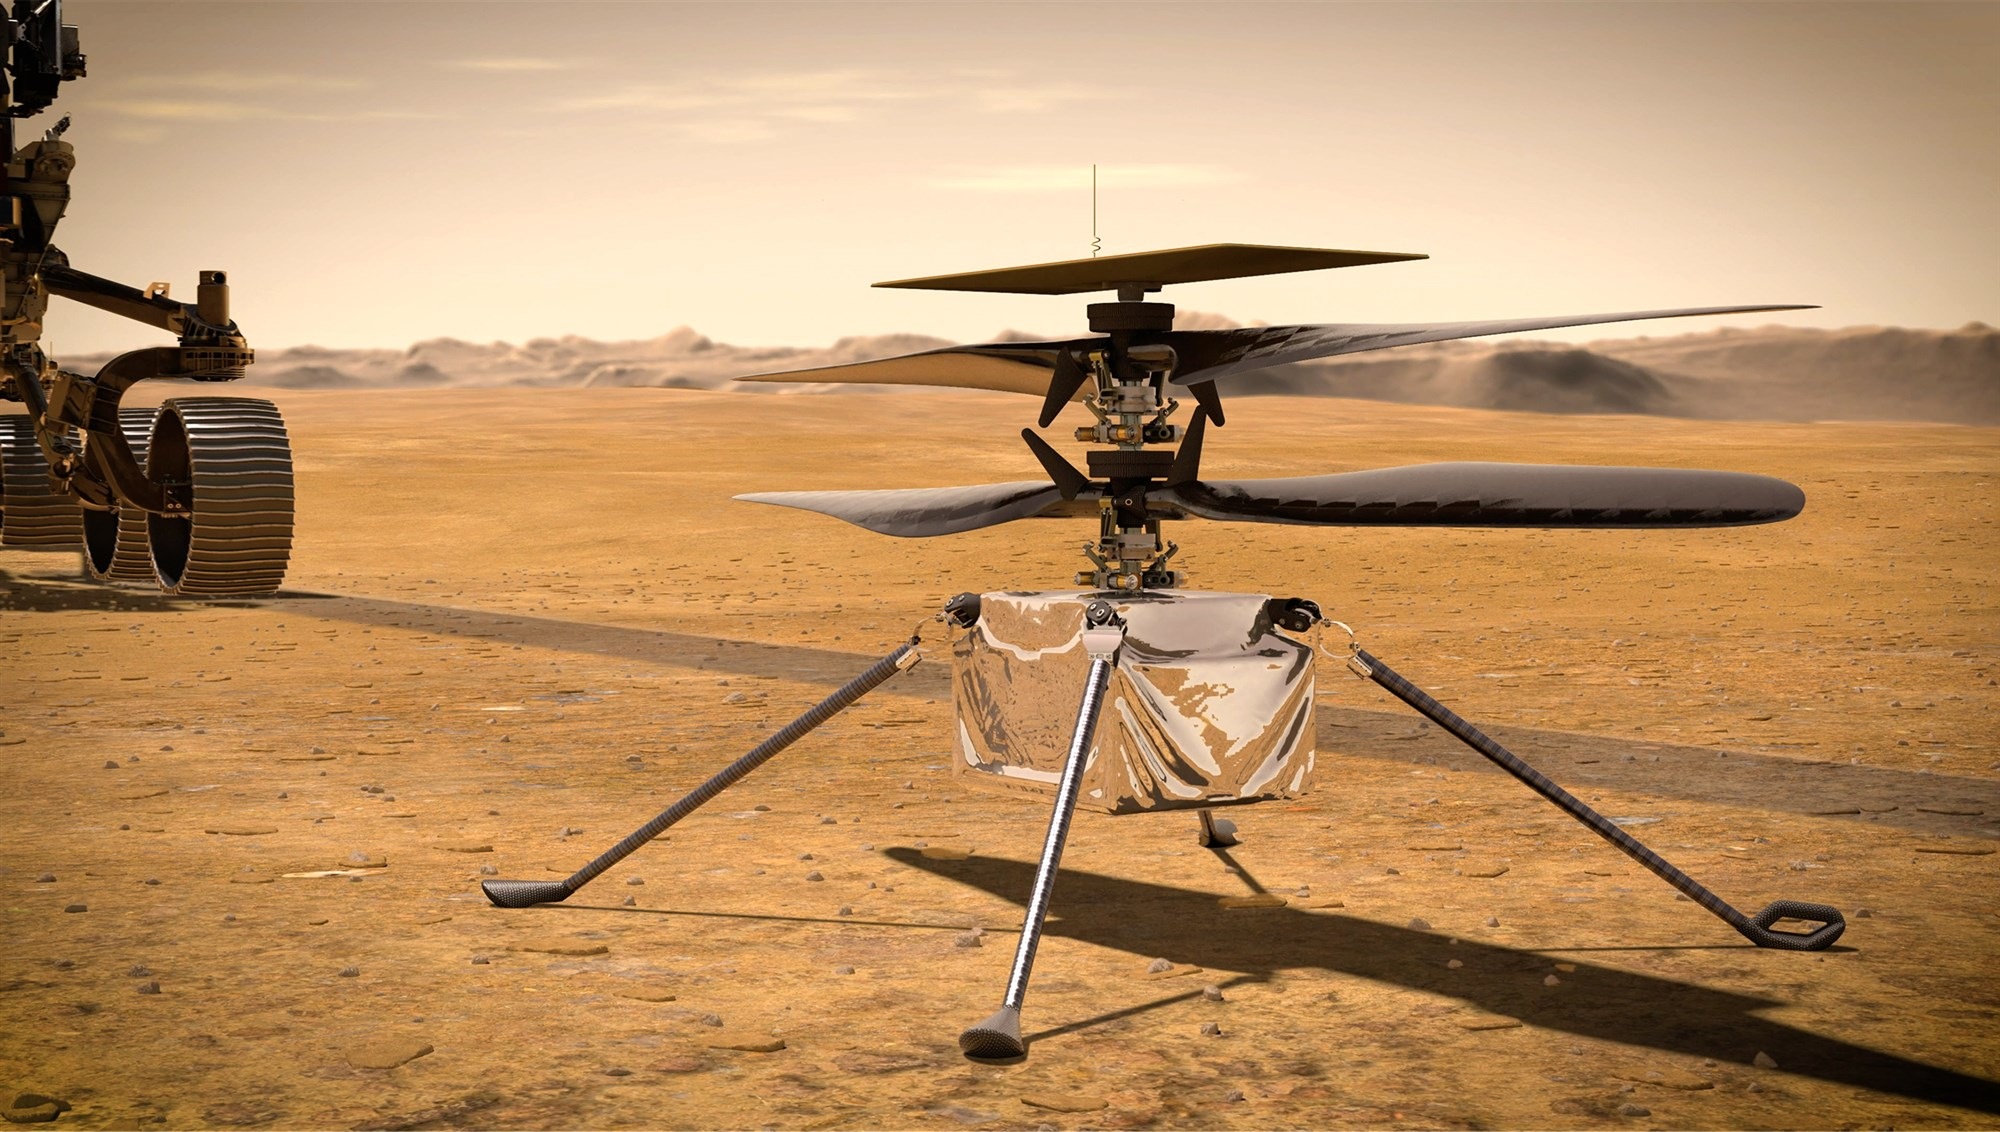 First 'Space helicopter' Set To Take To Martian Skies